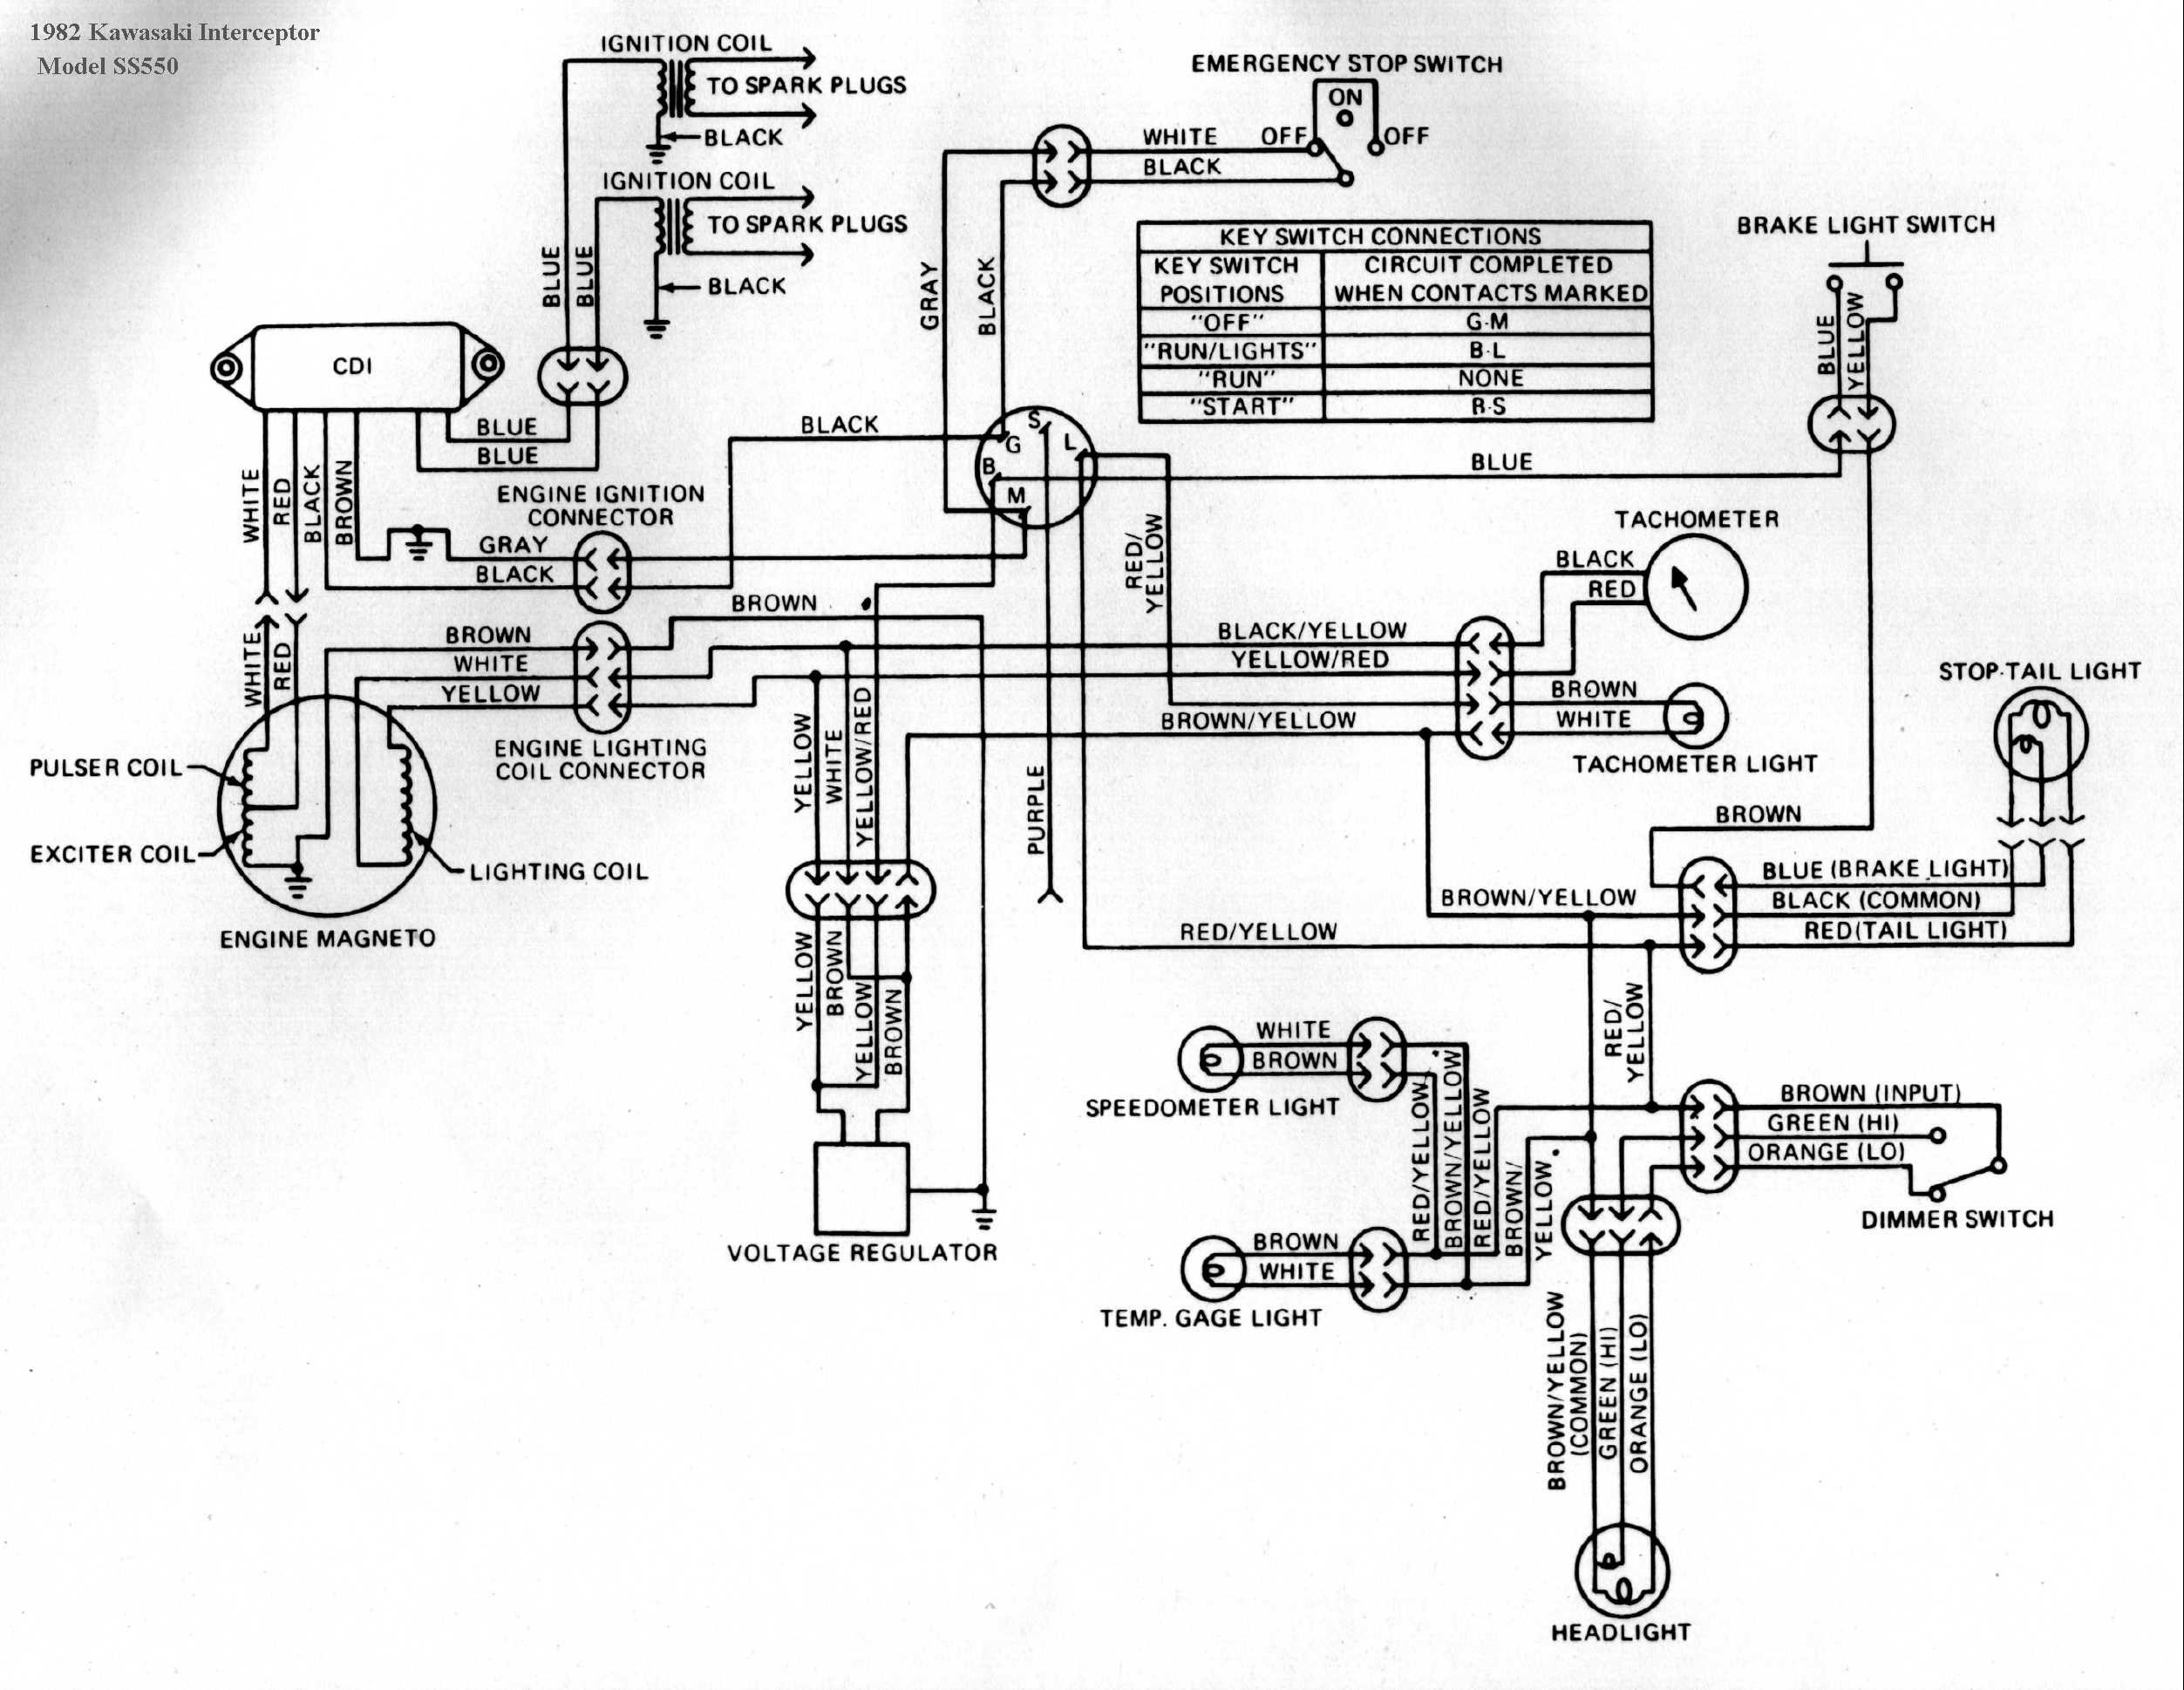 ss550 82 ski doo wiring diagram on 82 download wirning diagrams Kawasaki G5 Wiring-Diagram at fashall.co